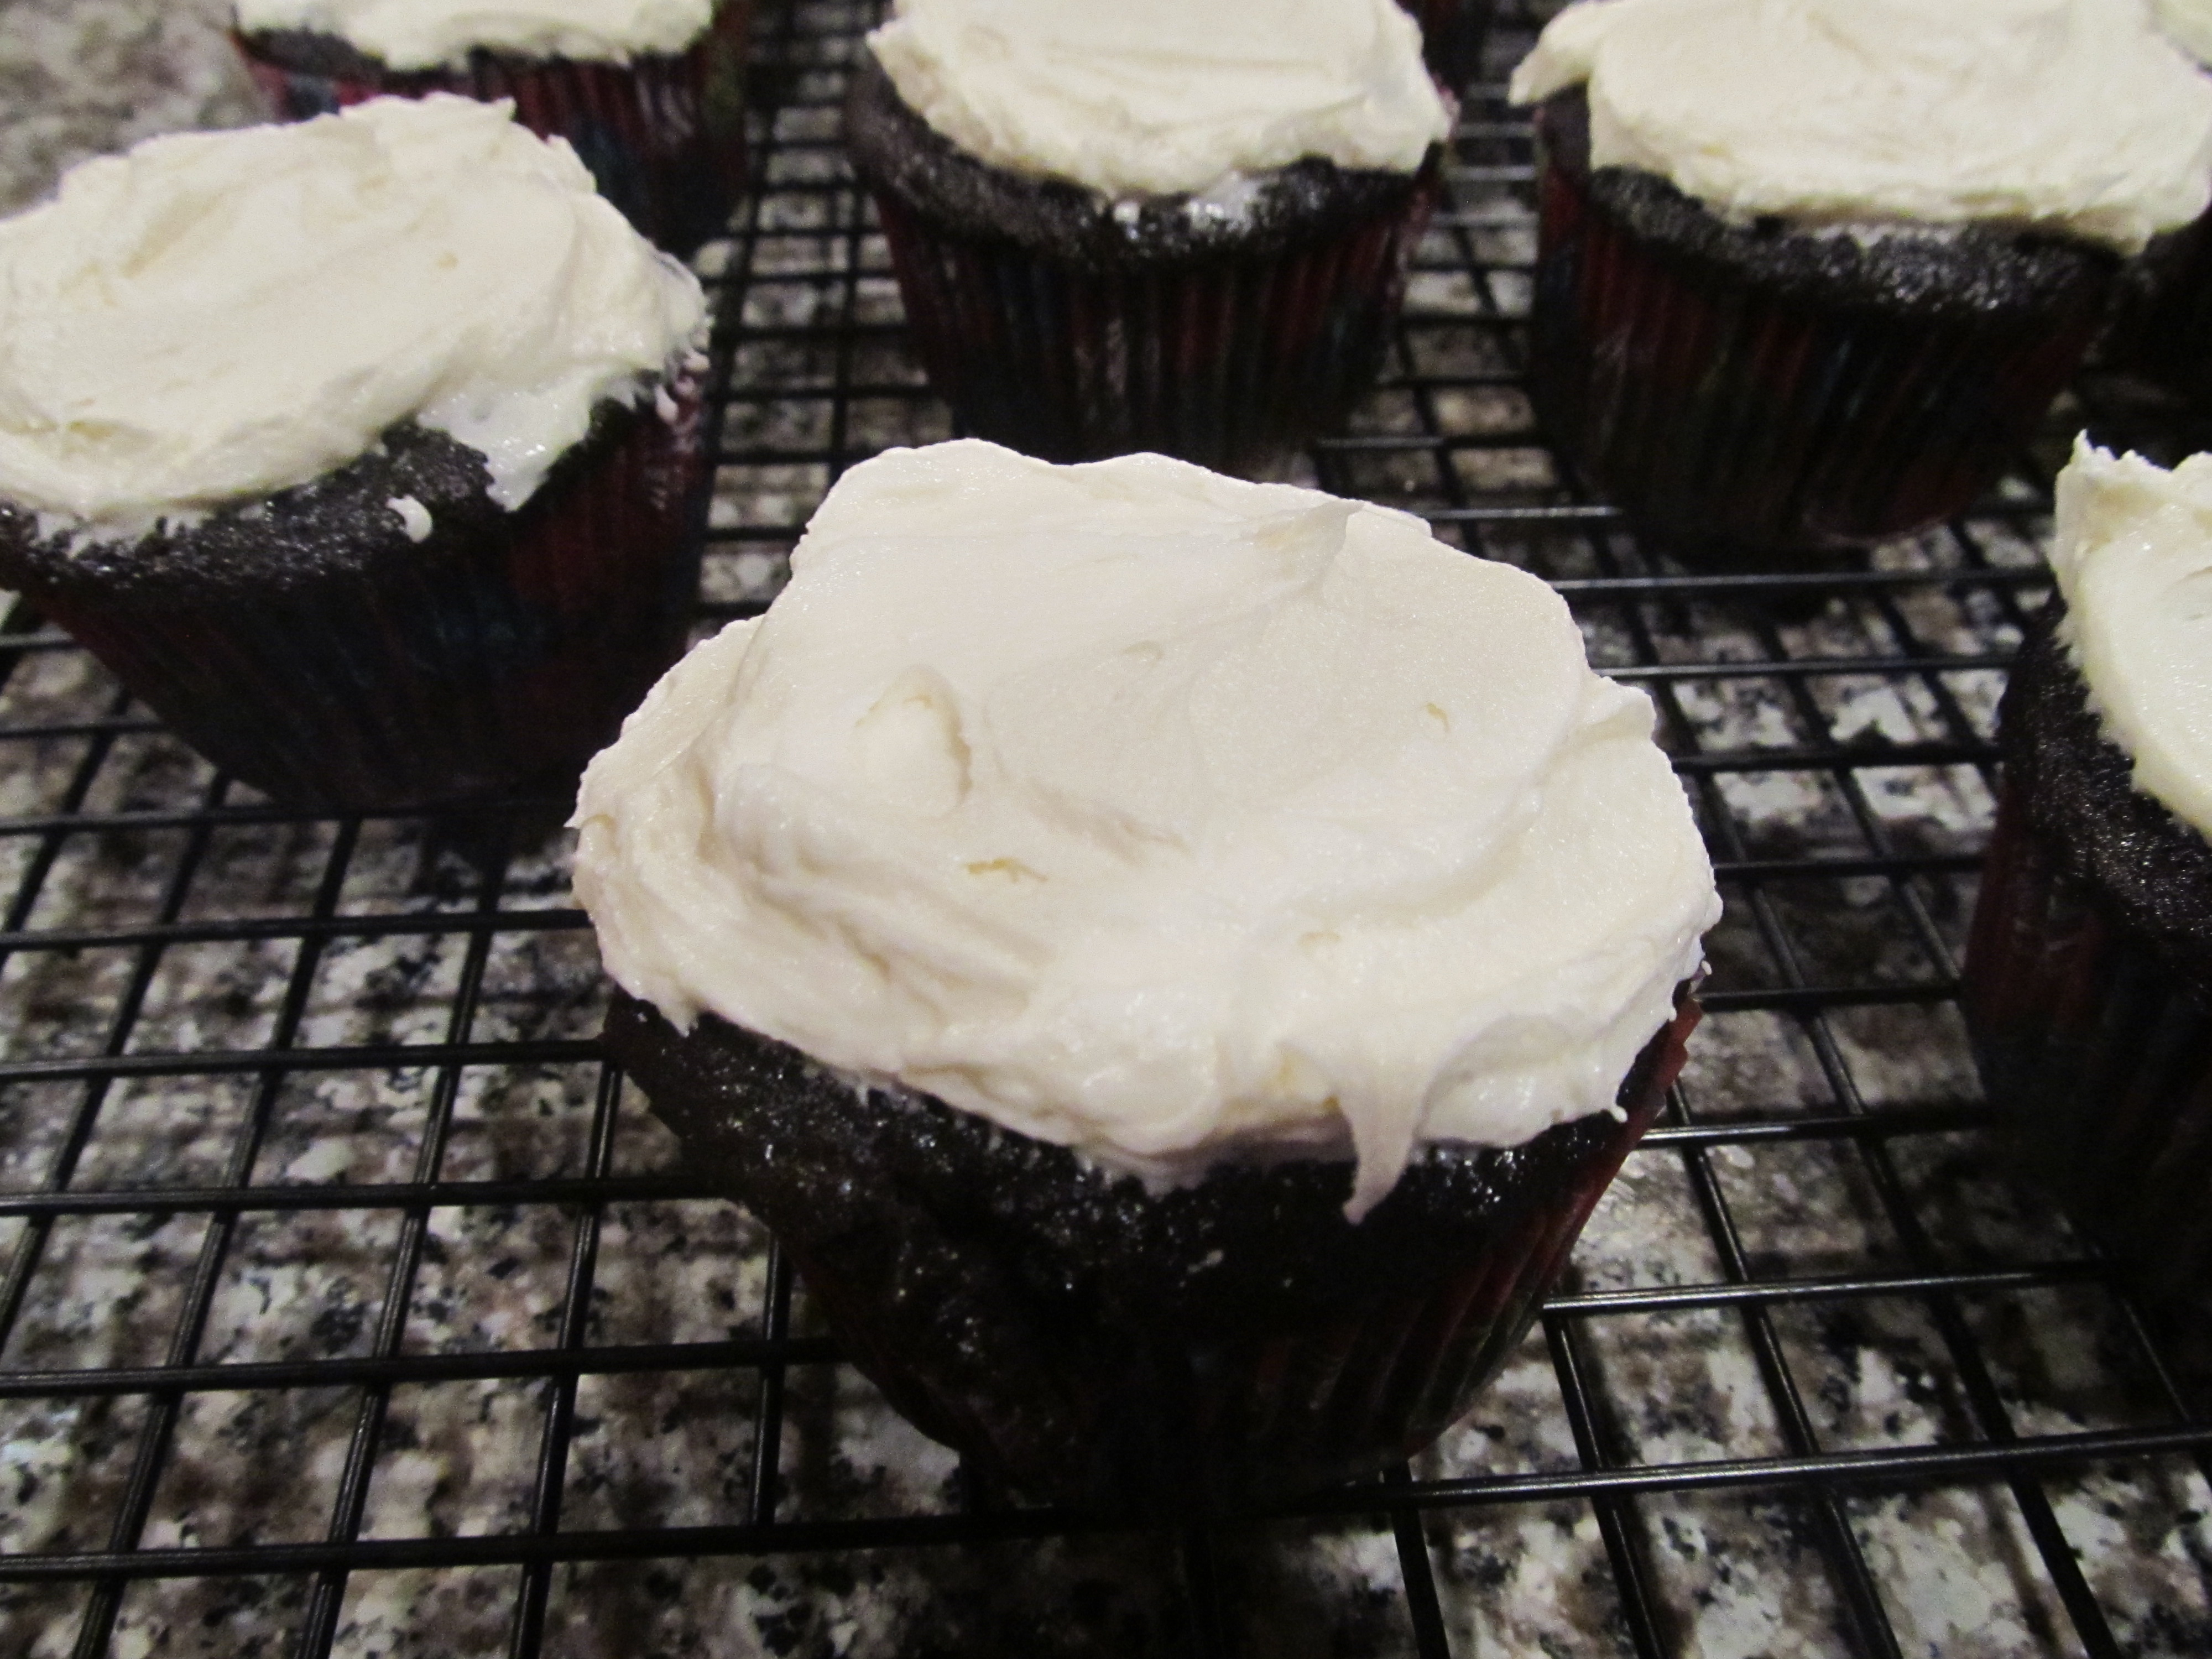 Decadent Dark Chocolate Cupcakes with Homemade Vanilla Frosting